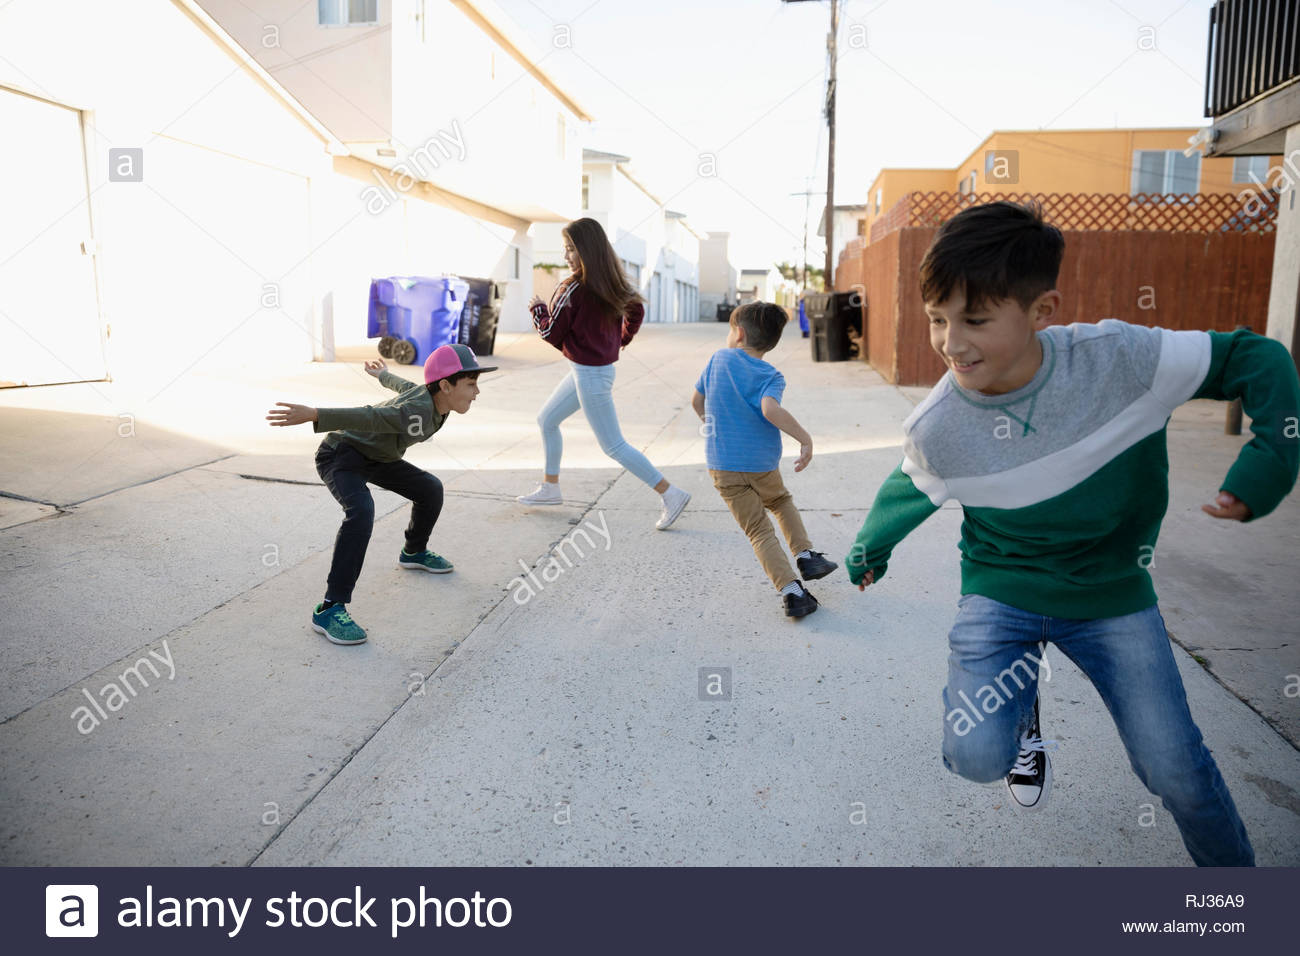 Latinx children playing tag in alley - Stock Image